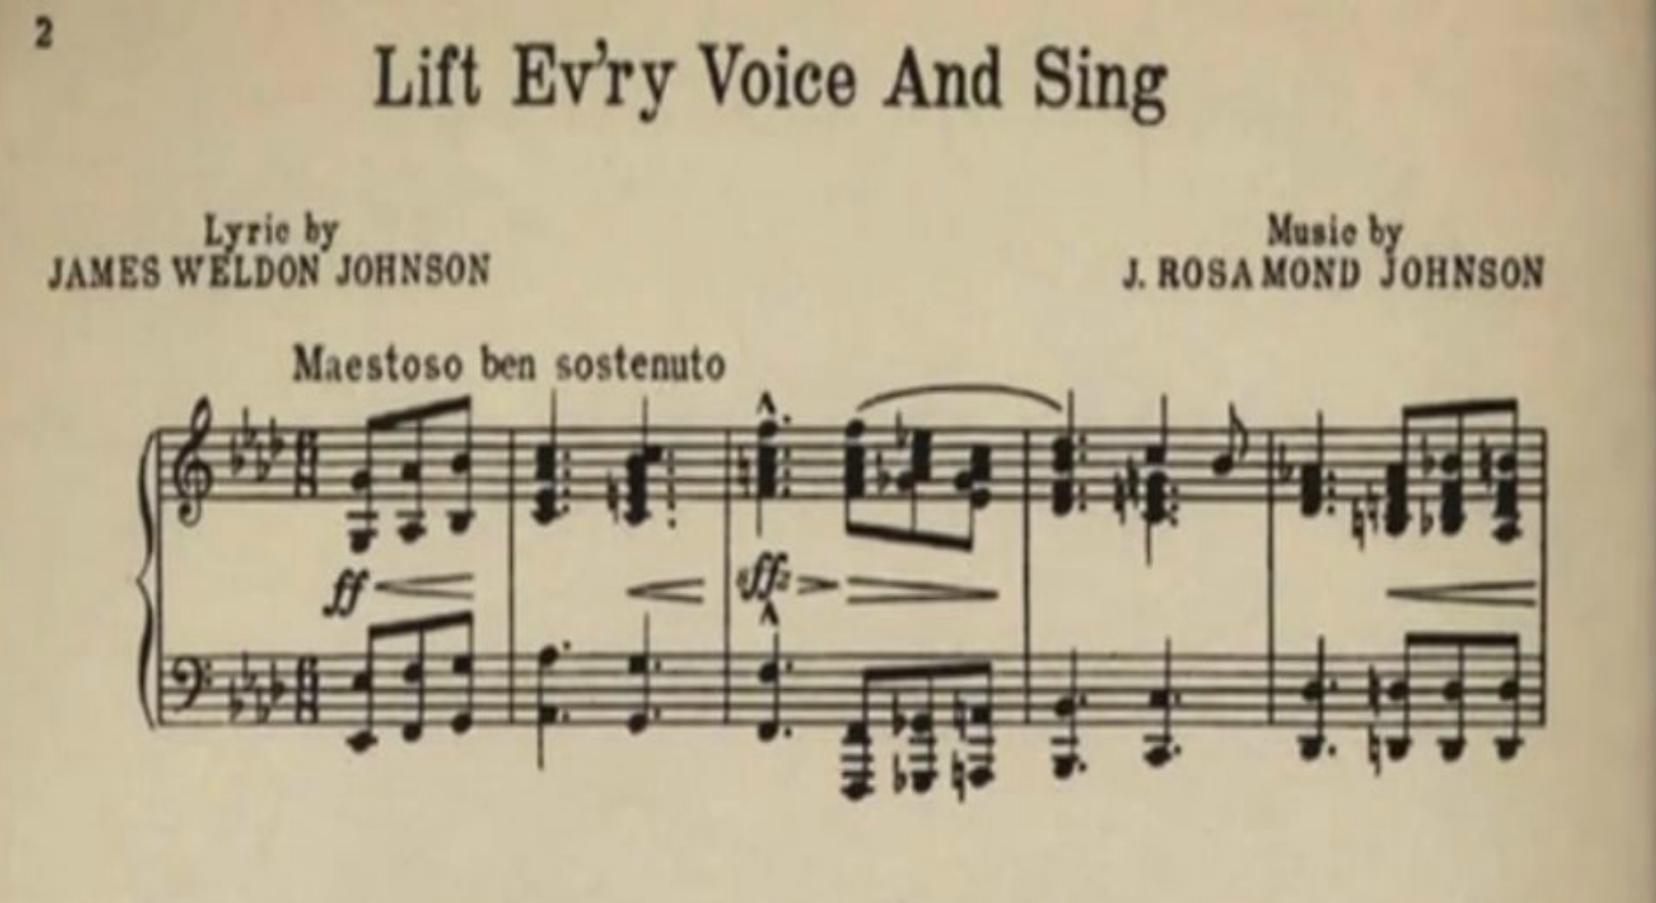 Lift Every Voice and Sing | The Poem and Song | Black History | PBS